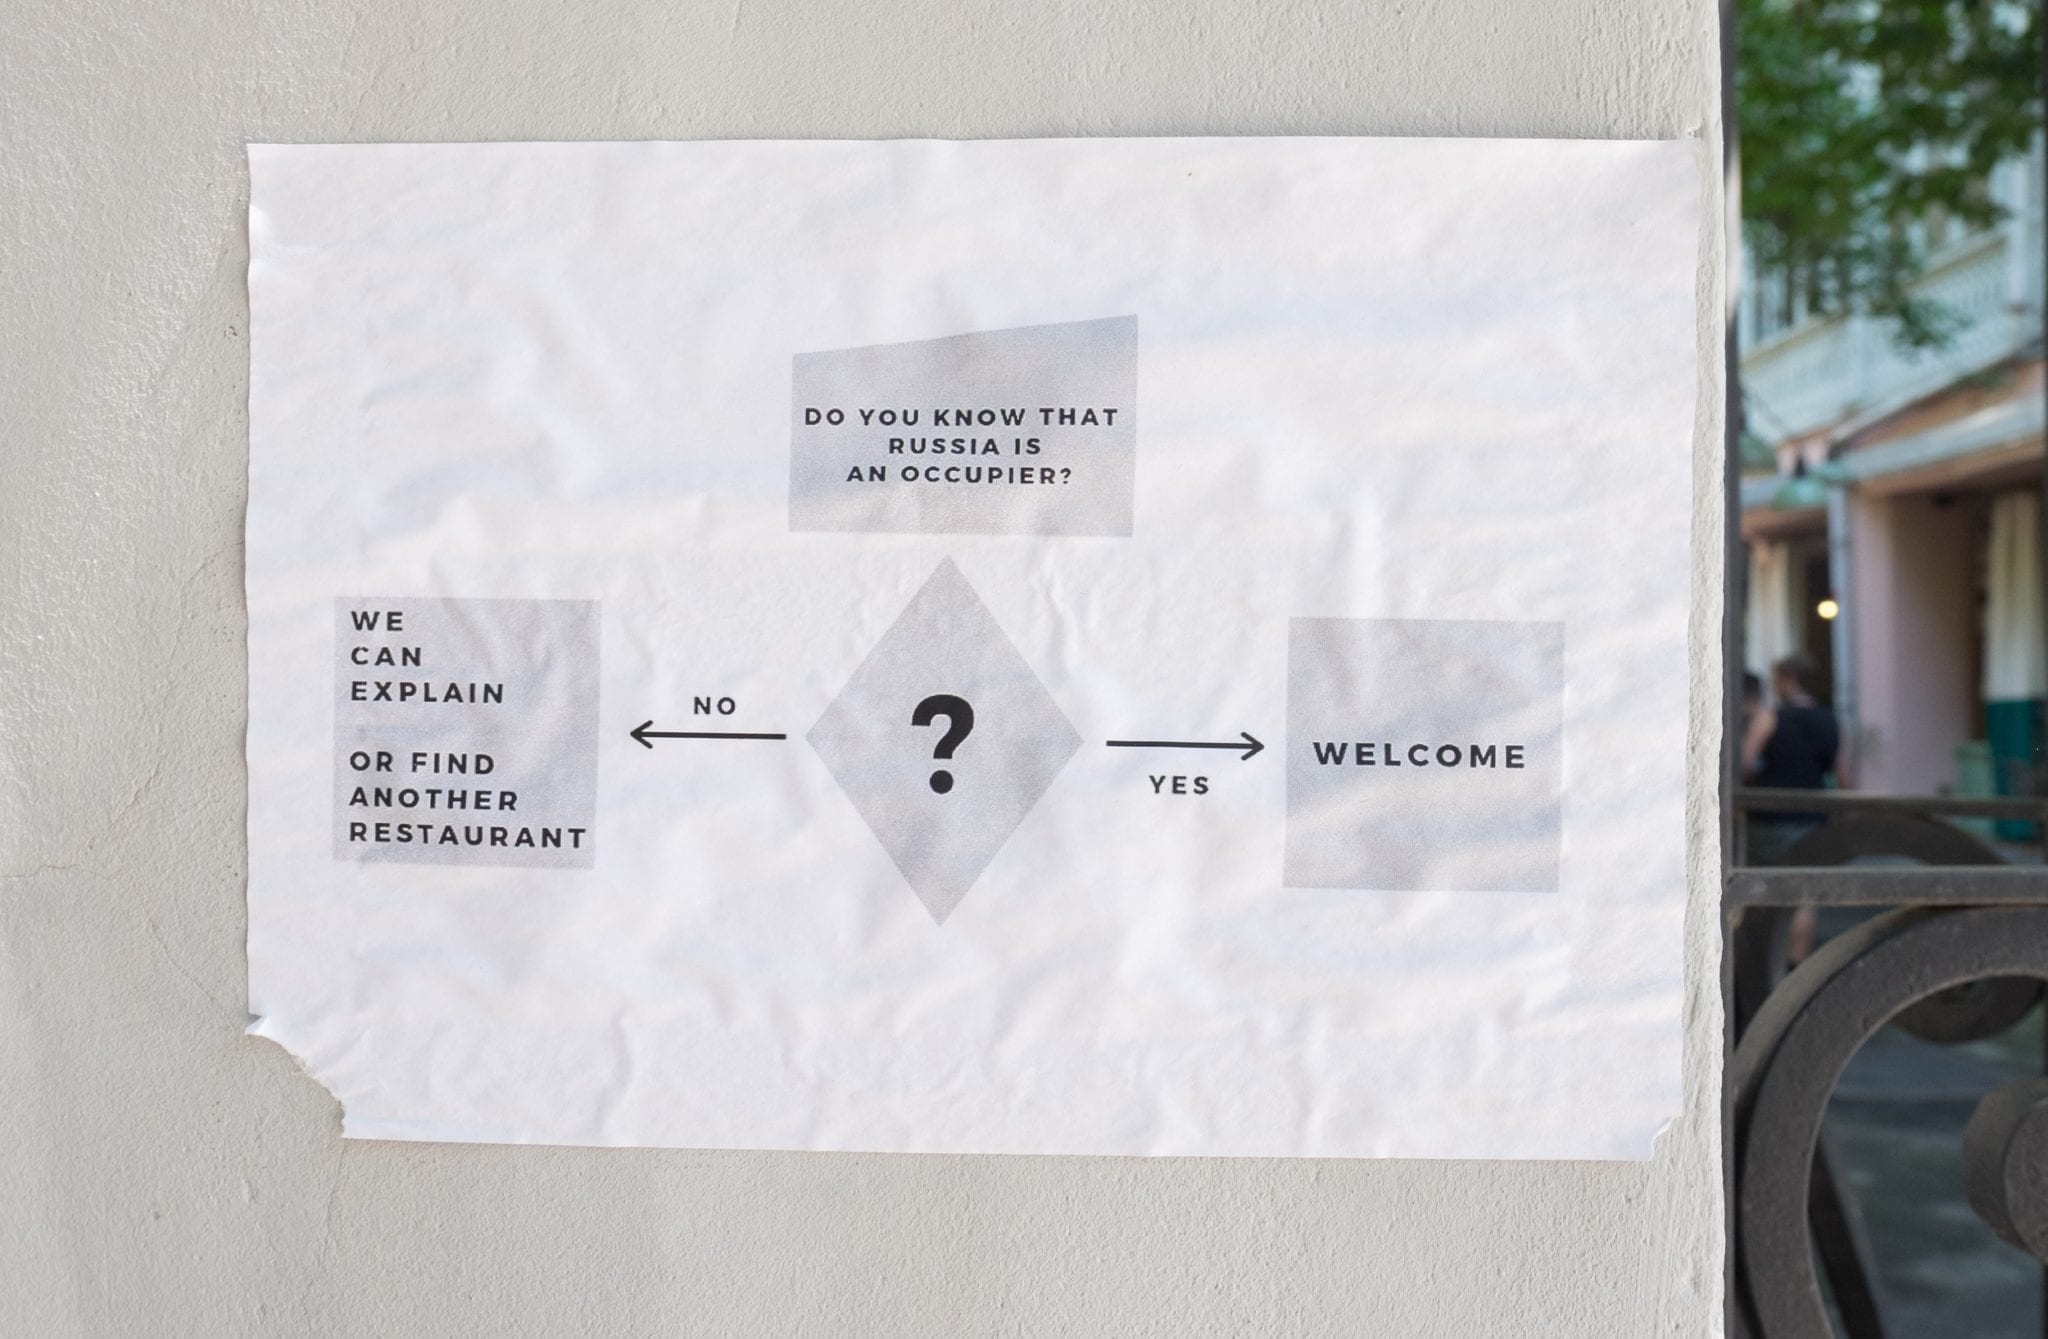 """A sign with a flow chart reading, """"Do you know that Russia is an Occupier?"""" If yes, """"Welcome."""" If no, """"We can explain or find another restaurant."""""""